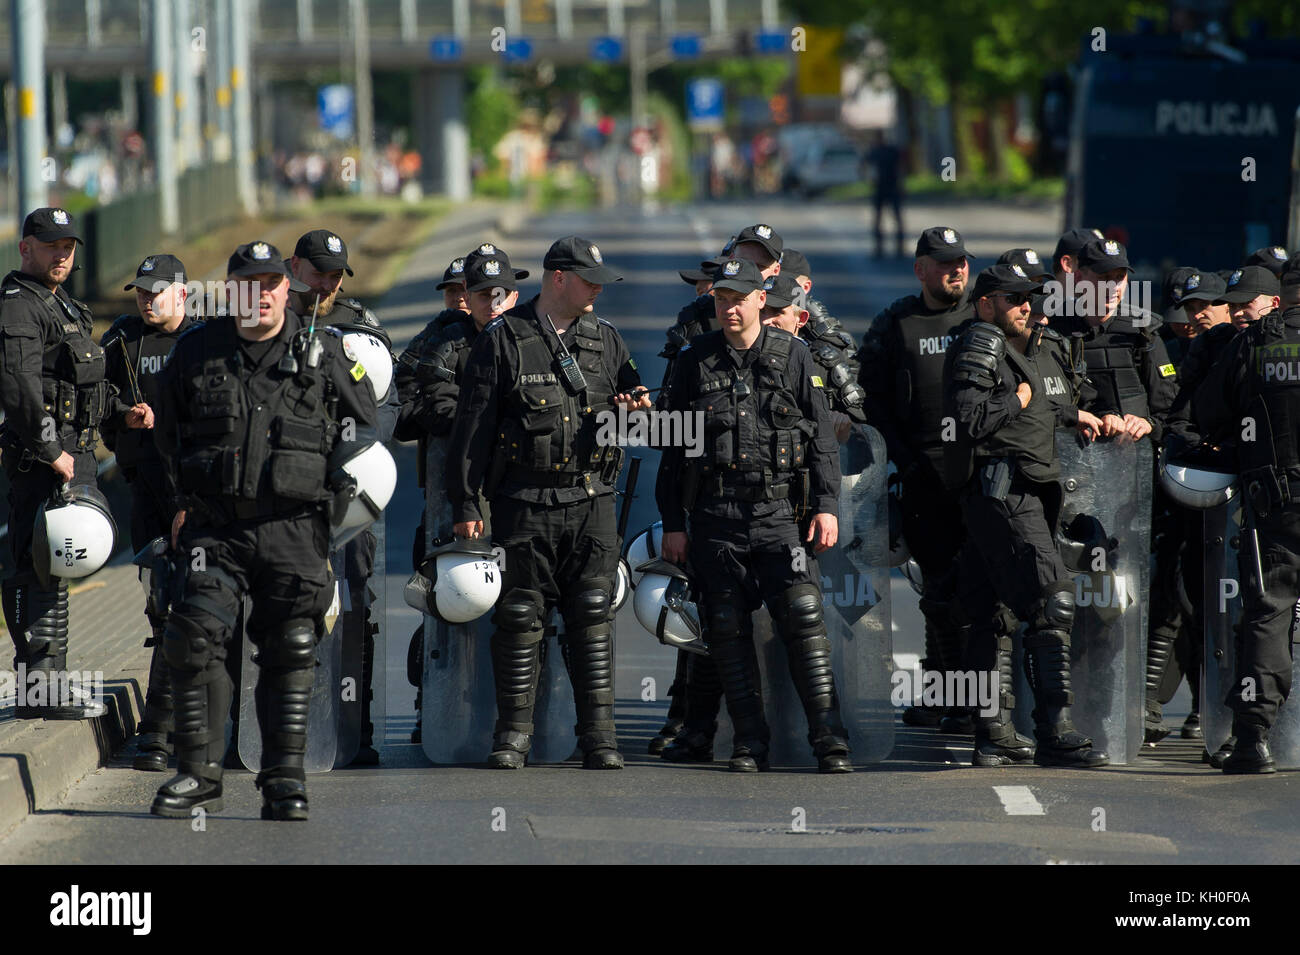 Polish anti-riot police (Oddzialy Prewencji Policji) during The Third Tricity Equality March to support LGBT rights - Stock Image